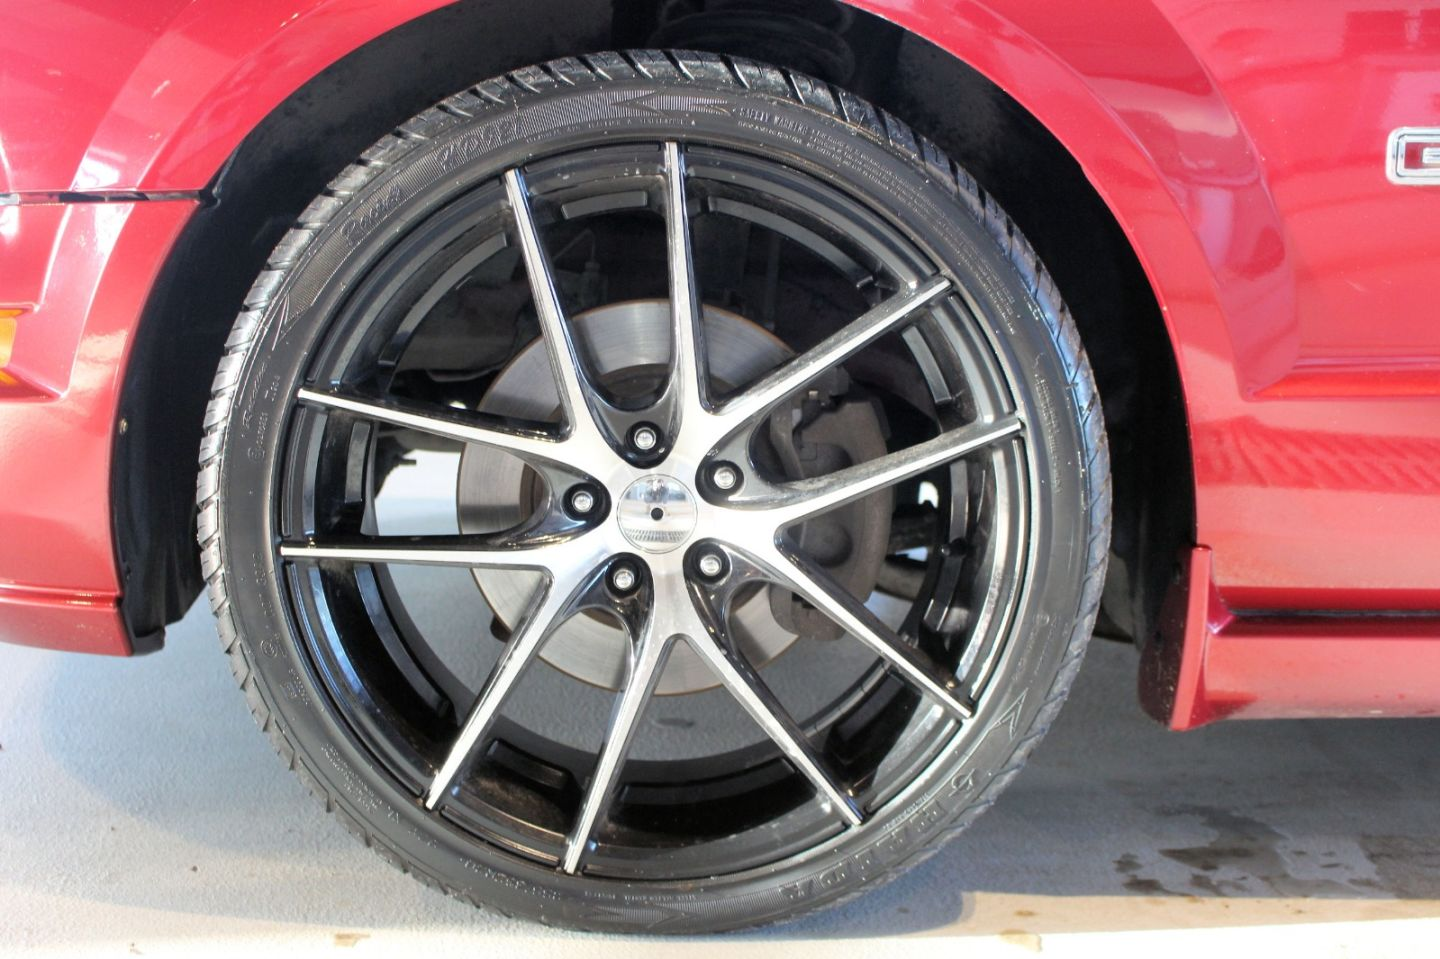 2007 Ford Mustang GT for sale in Spruce Grove, Alberta